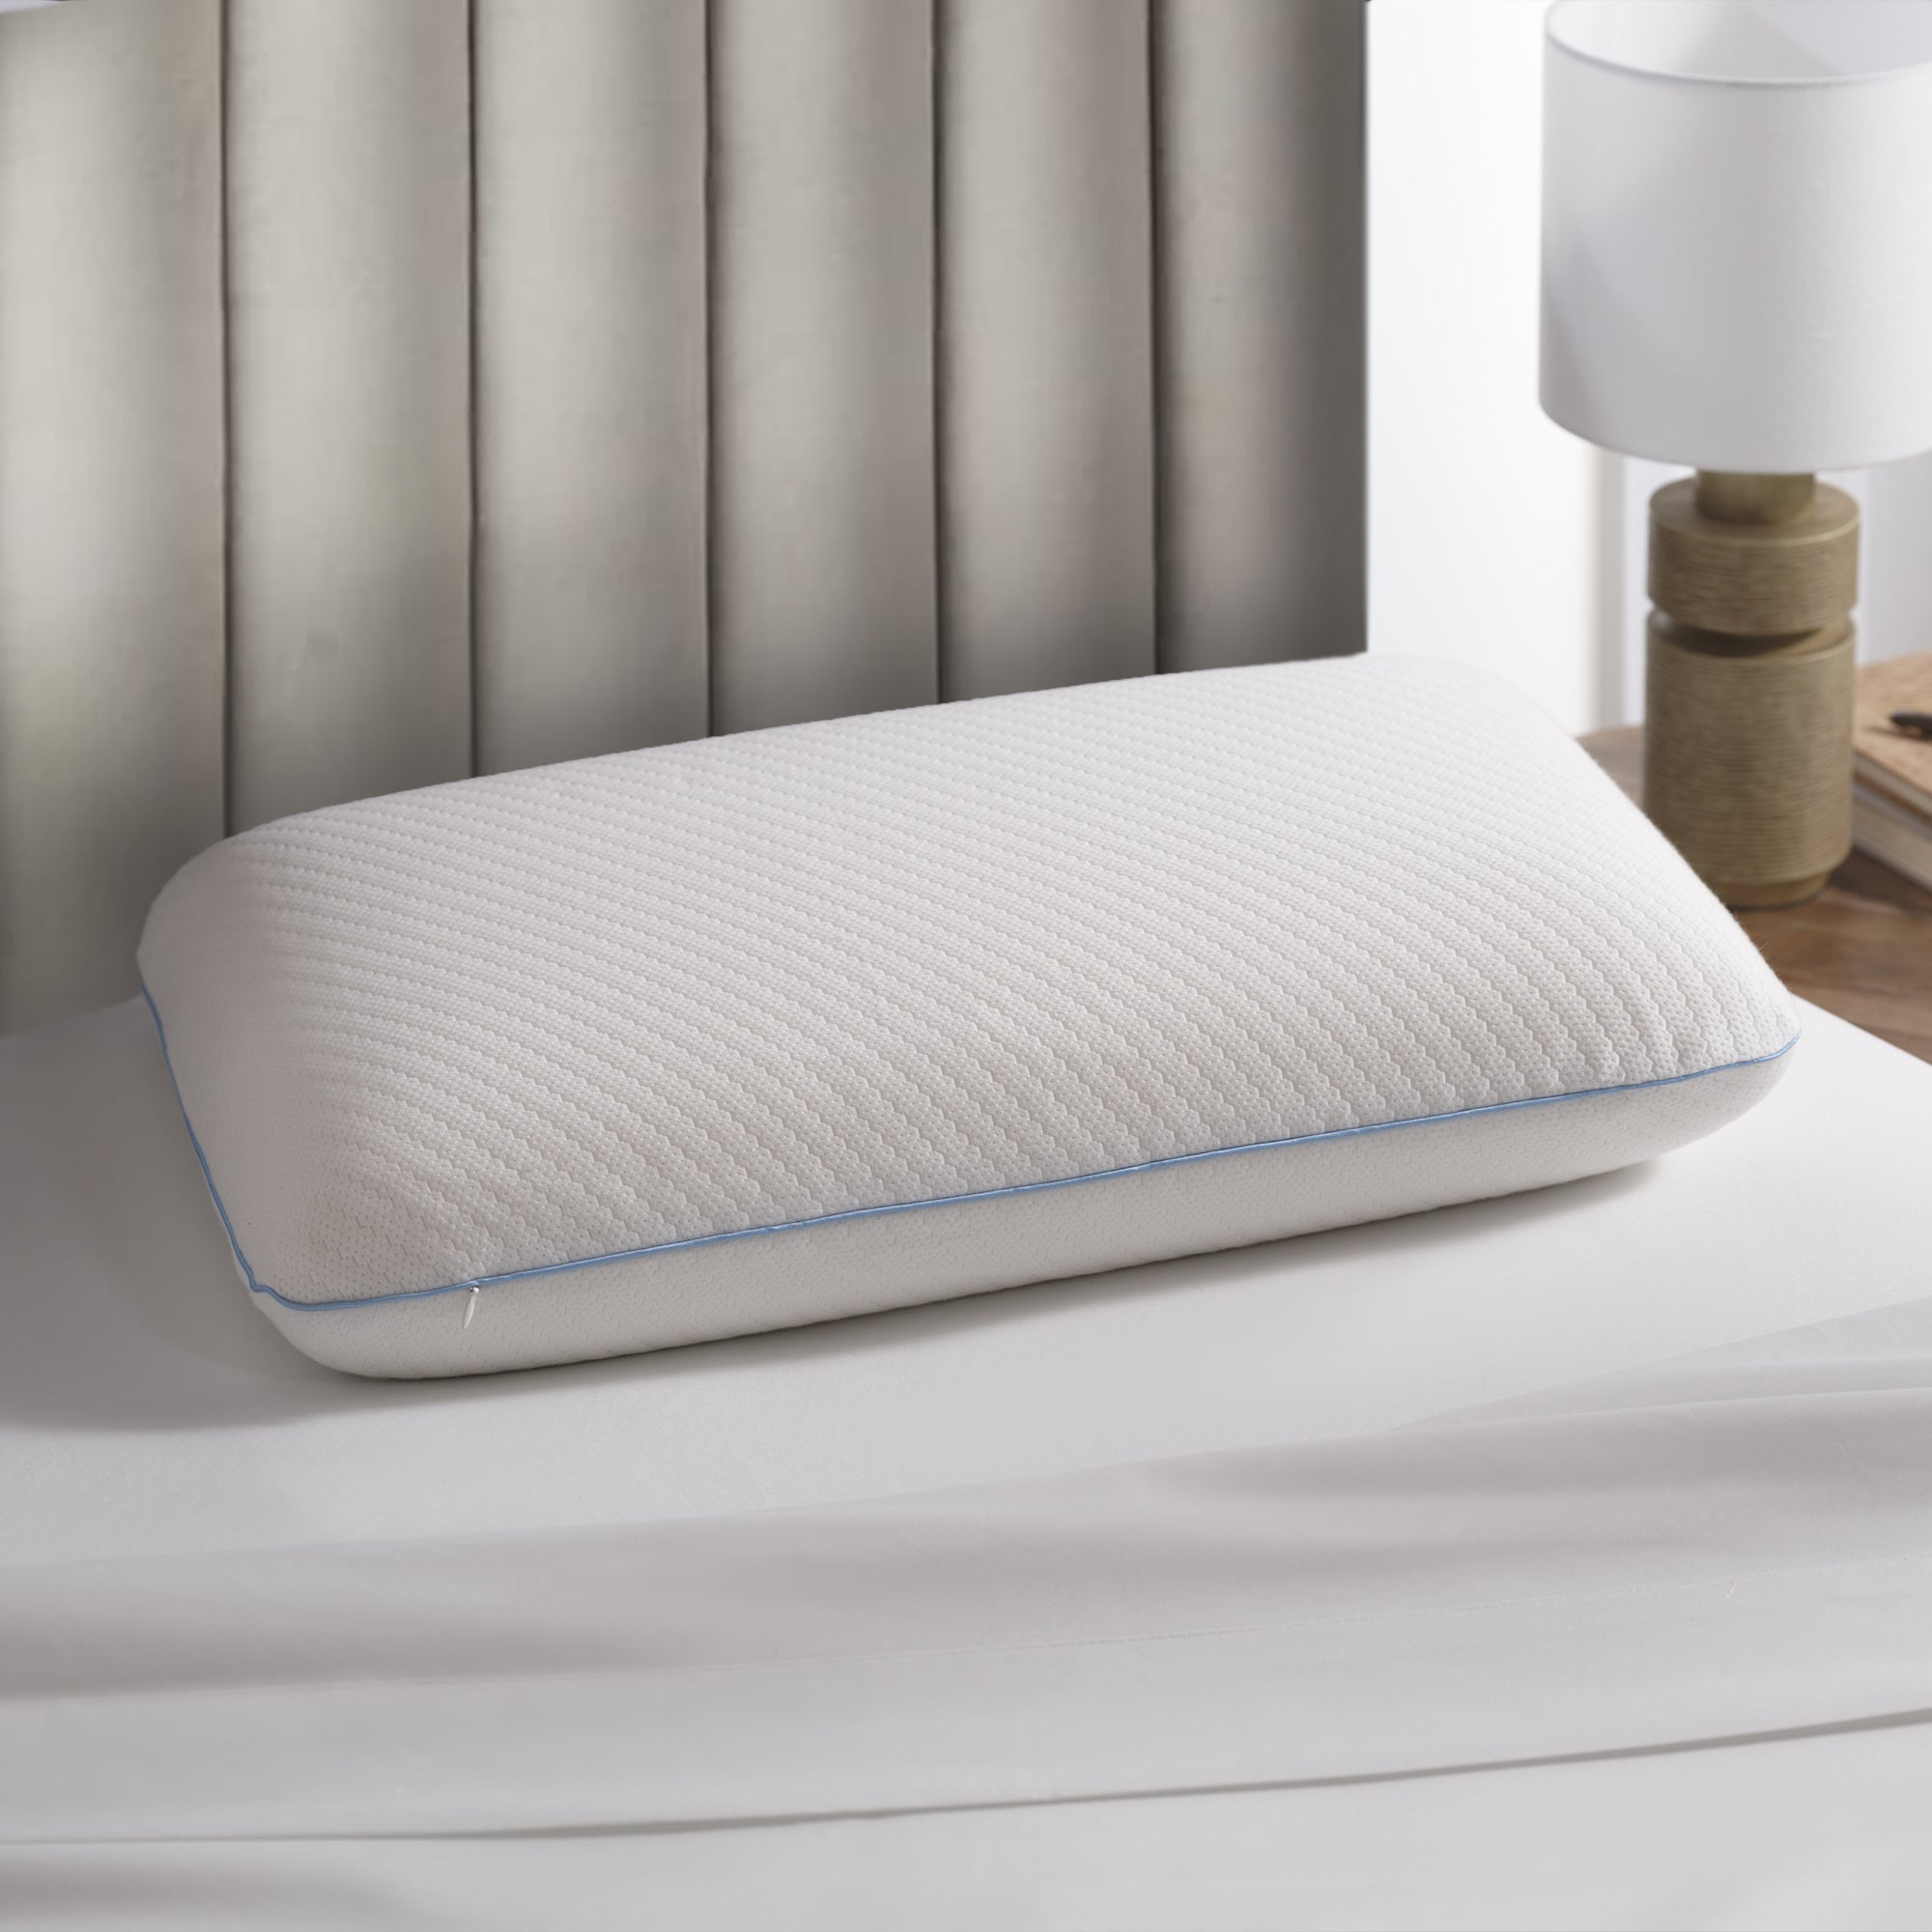 Bio Based Foam Bed Pillow with Tencel Cover